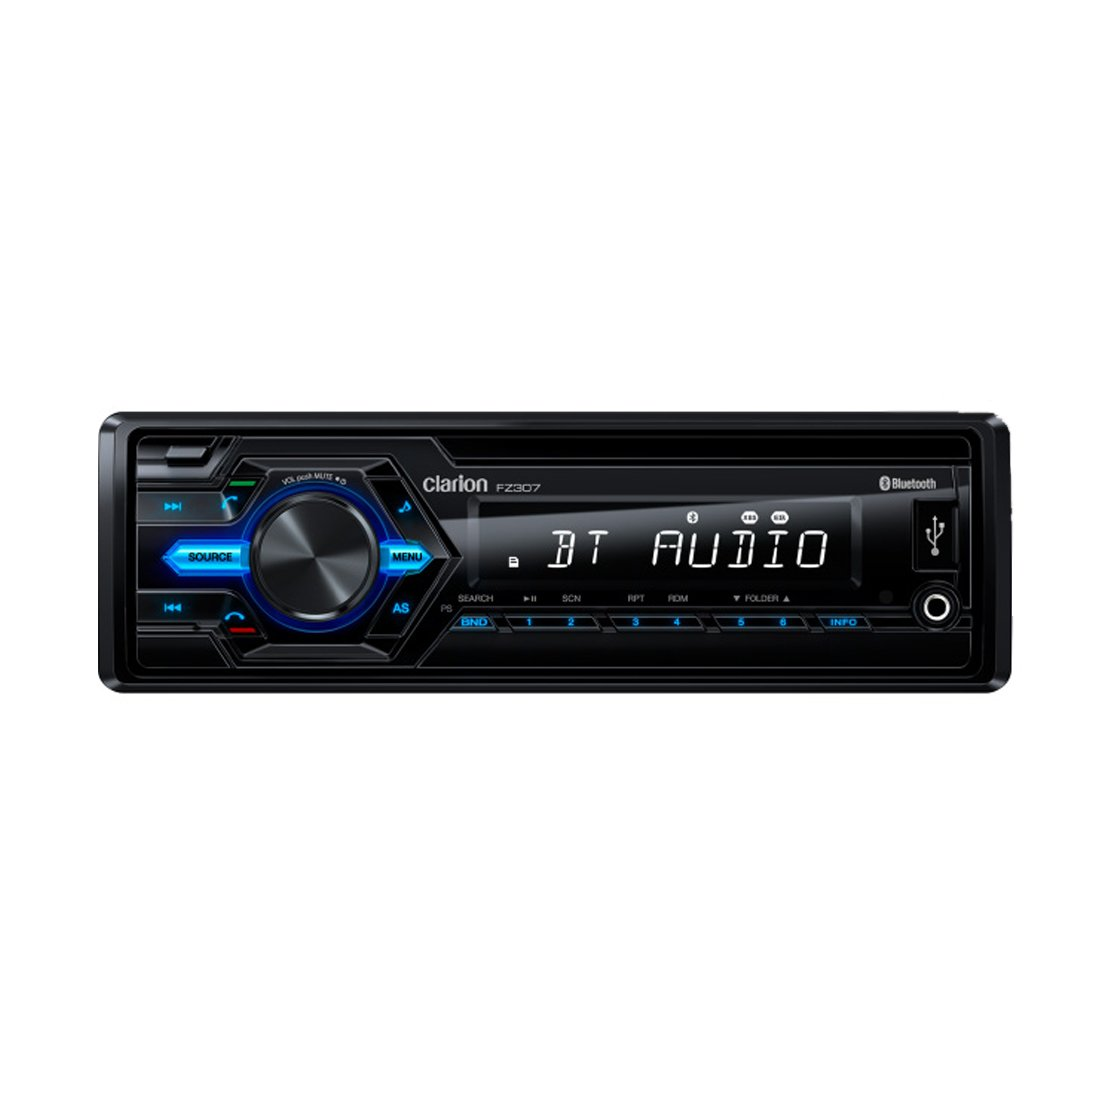 Clarion FZ307 USB / AUX-IN / SD / MP3 / WMA RECEIVER WITH BUILT-IN BLUETOOTH (Does not play CDs)